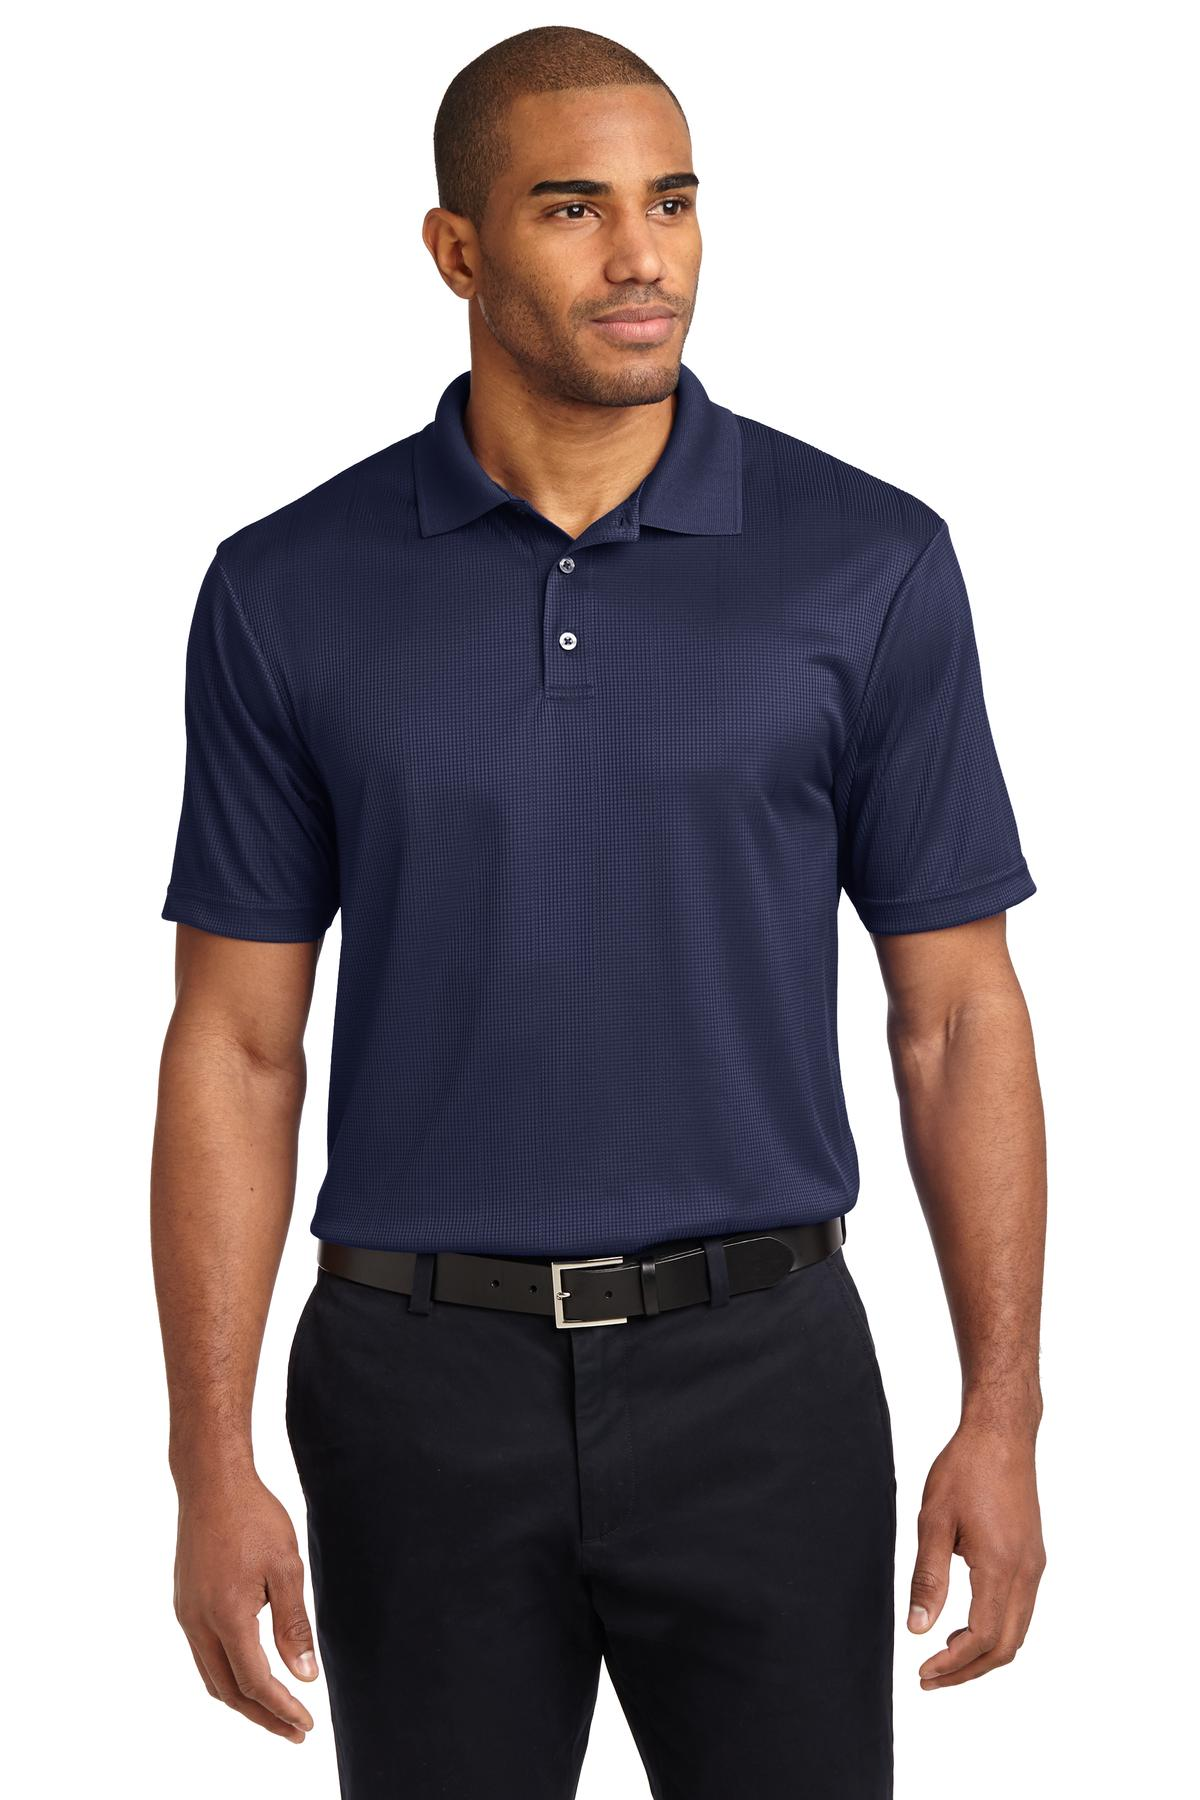 Steel Grey Port Authority Silk Touch Performance Polo.